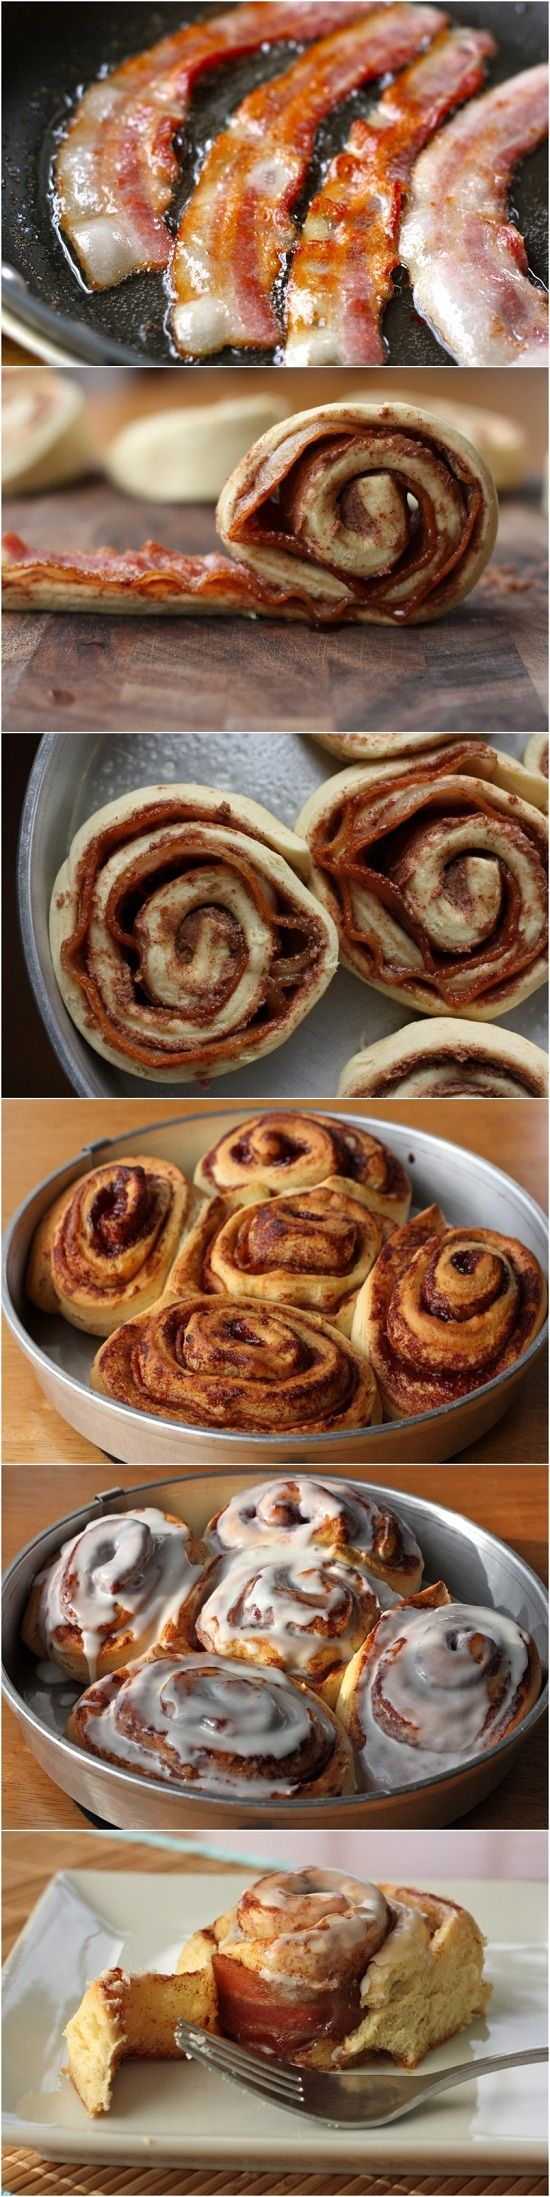 Bacon Cinnamon Rolls..... Genius idea, but sub the pre-made dough for ...